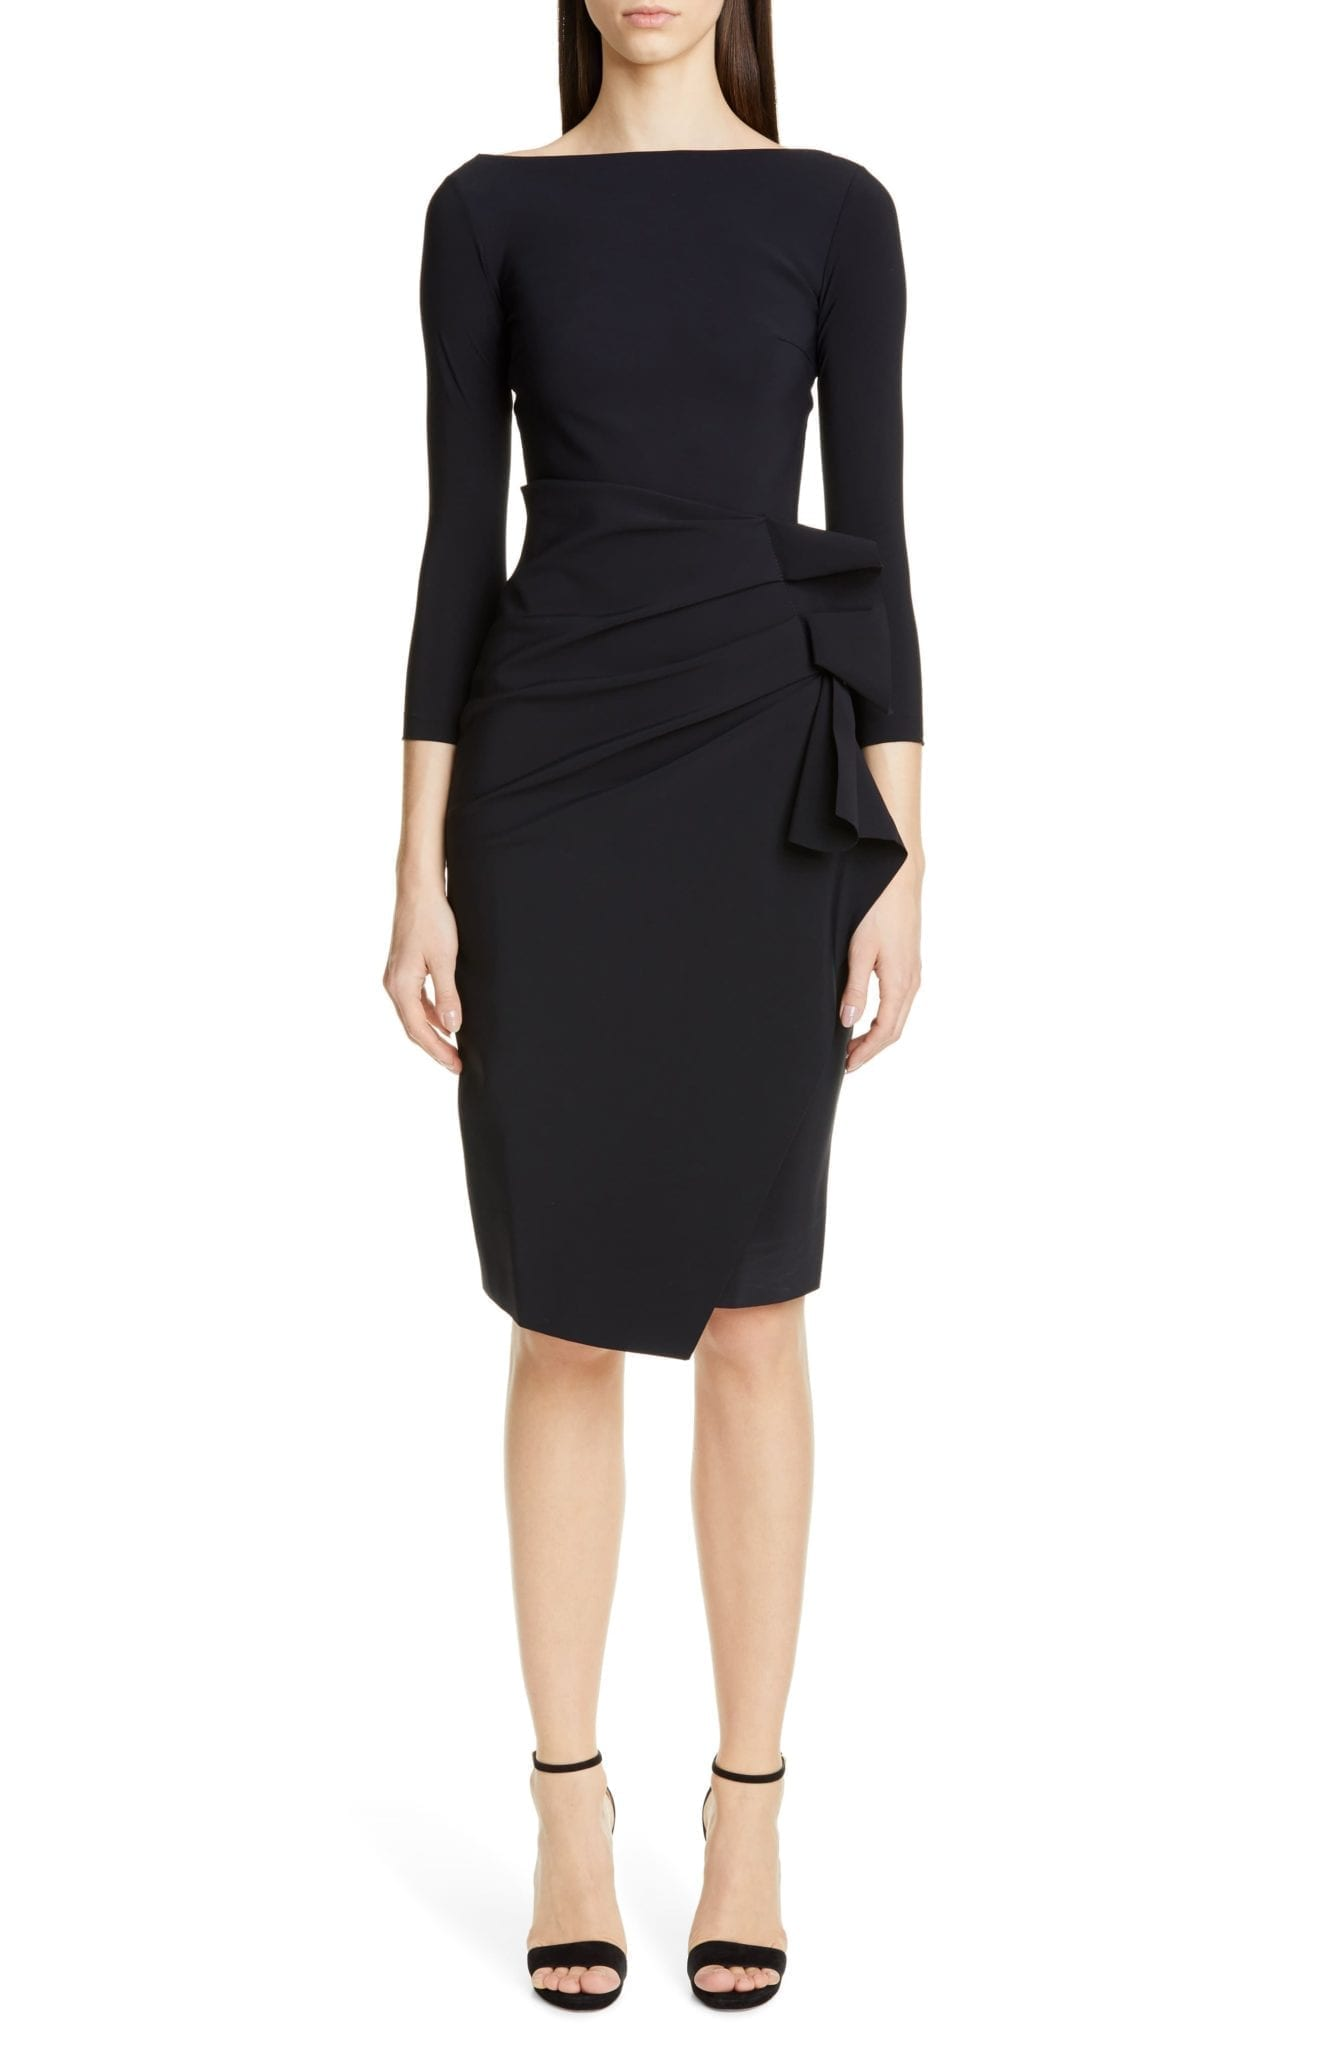 CHIARA BONI LA PETITE ROBE Zelma Cocktail Dress